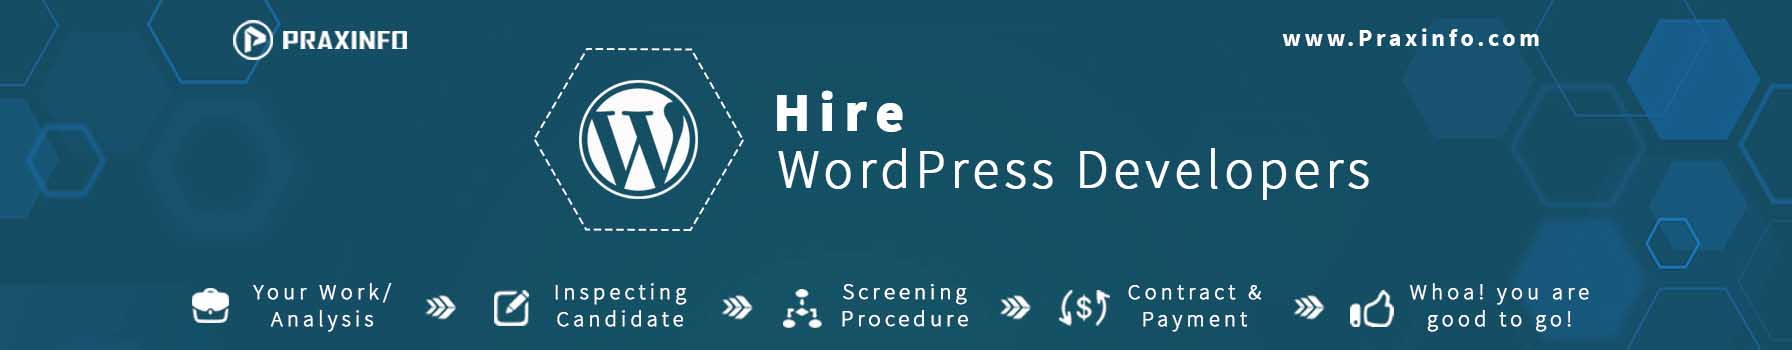 WordPress-developer-banner.jpg